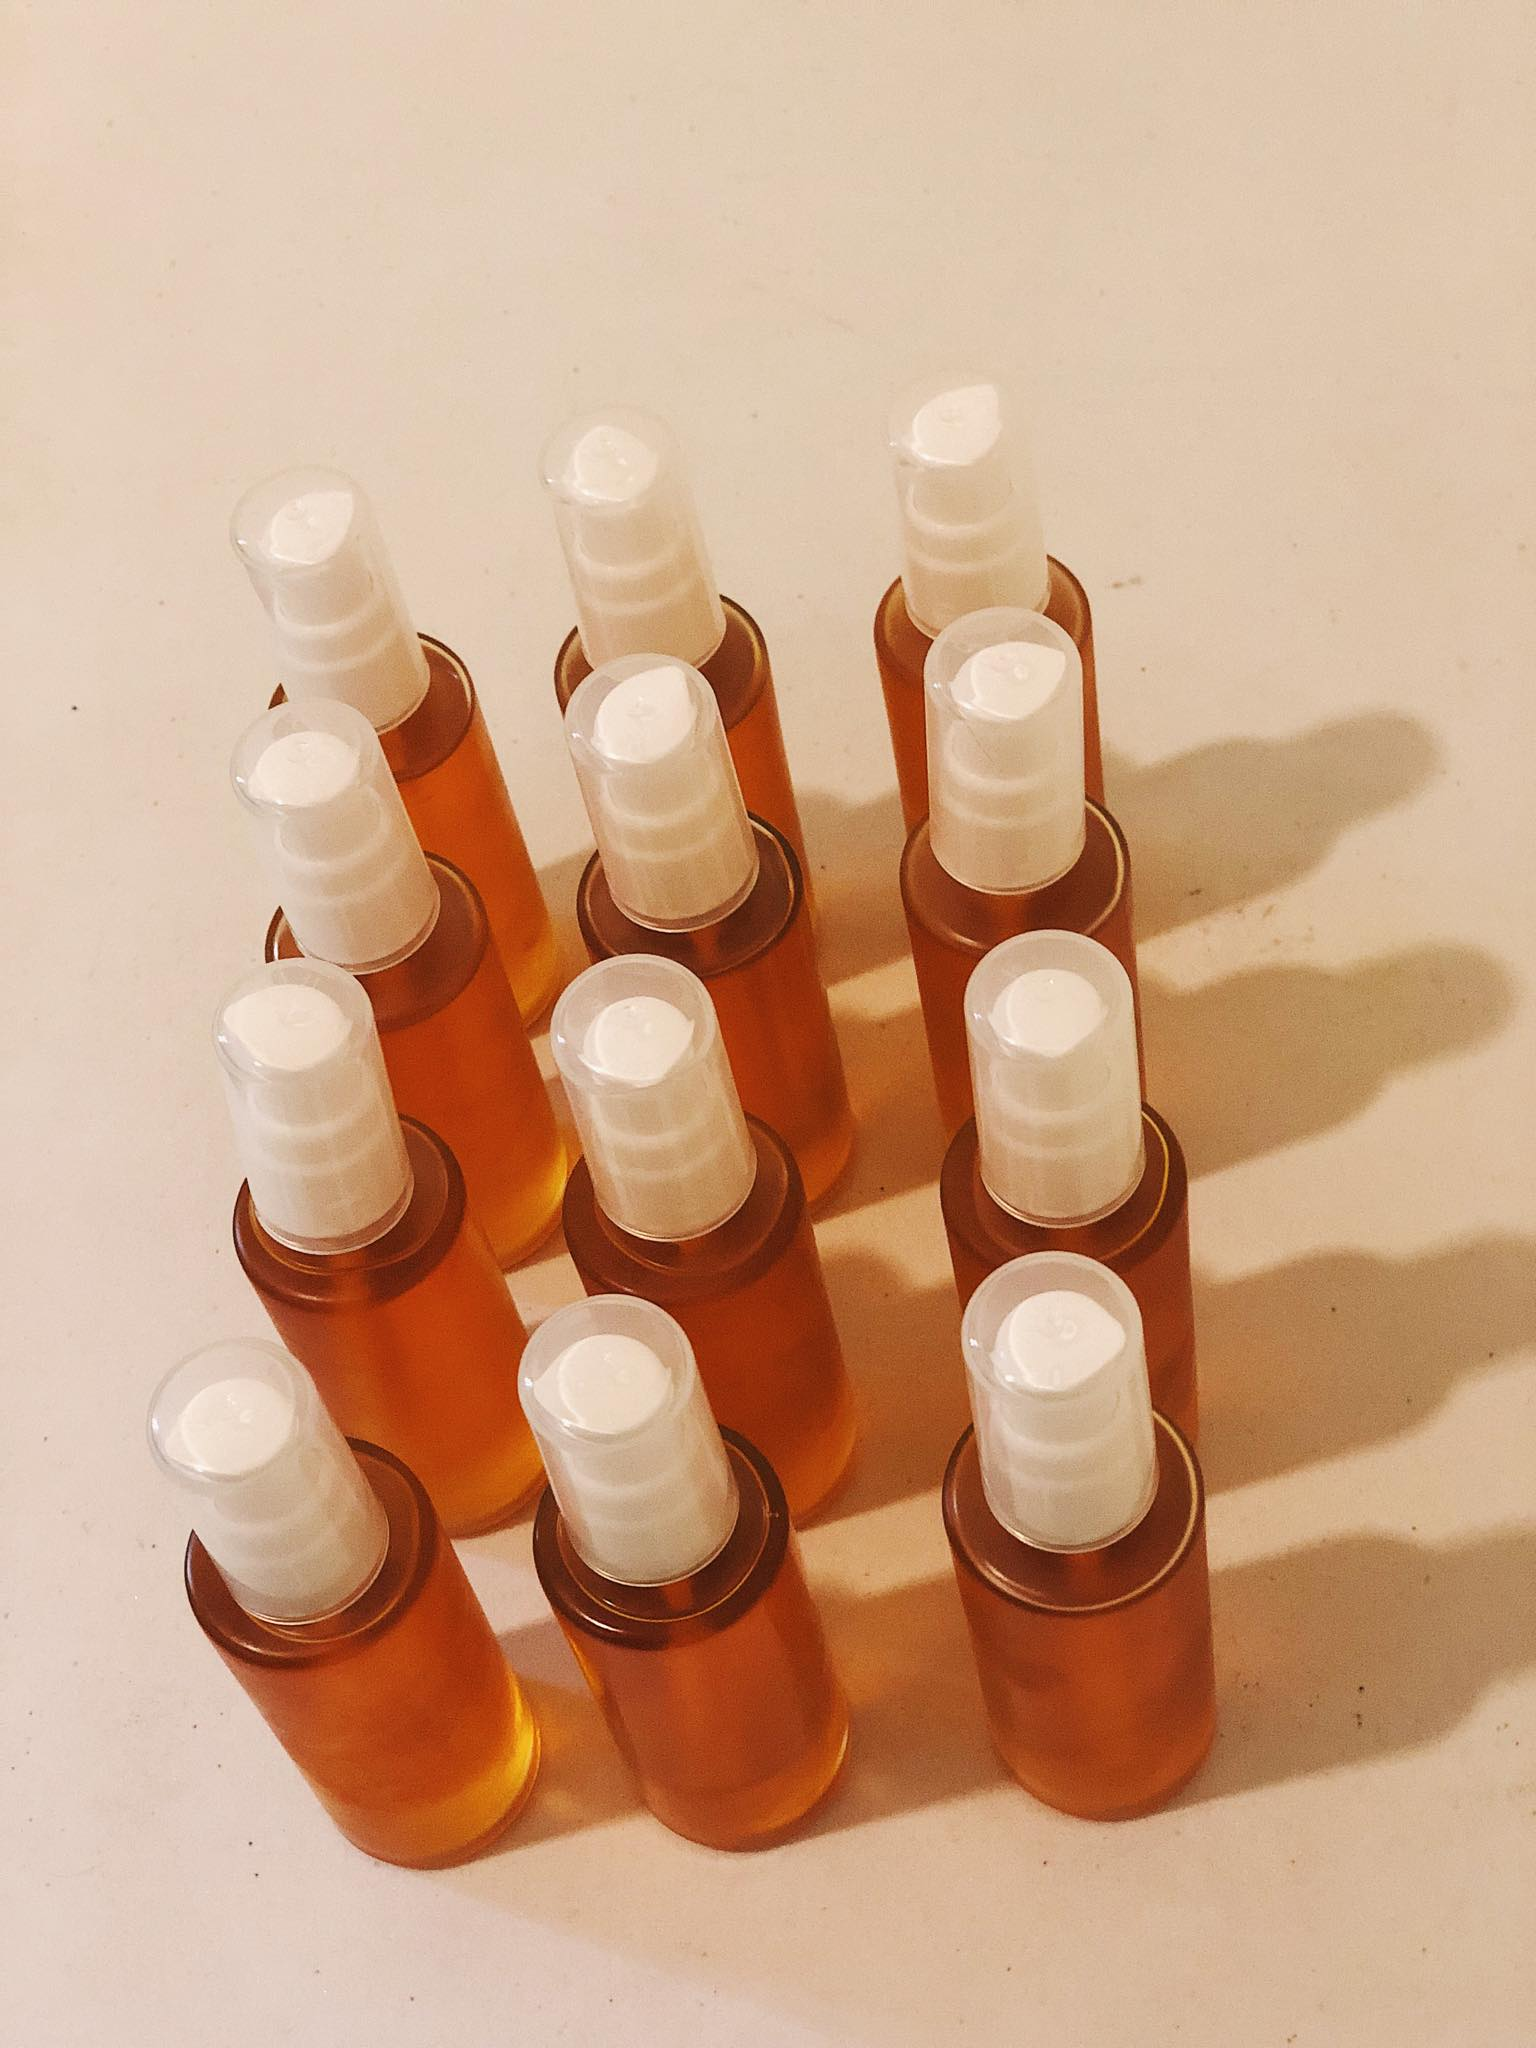 [ON PRE-ORDER] GOTTA GLOW Face & Body Oil